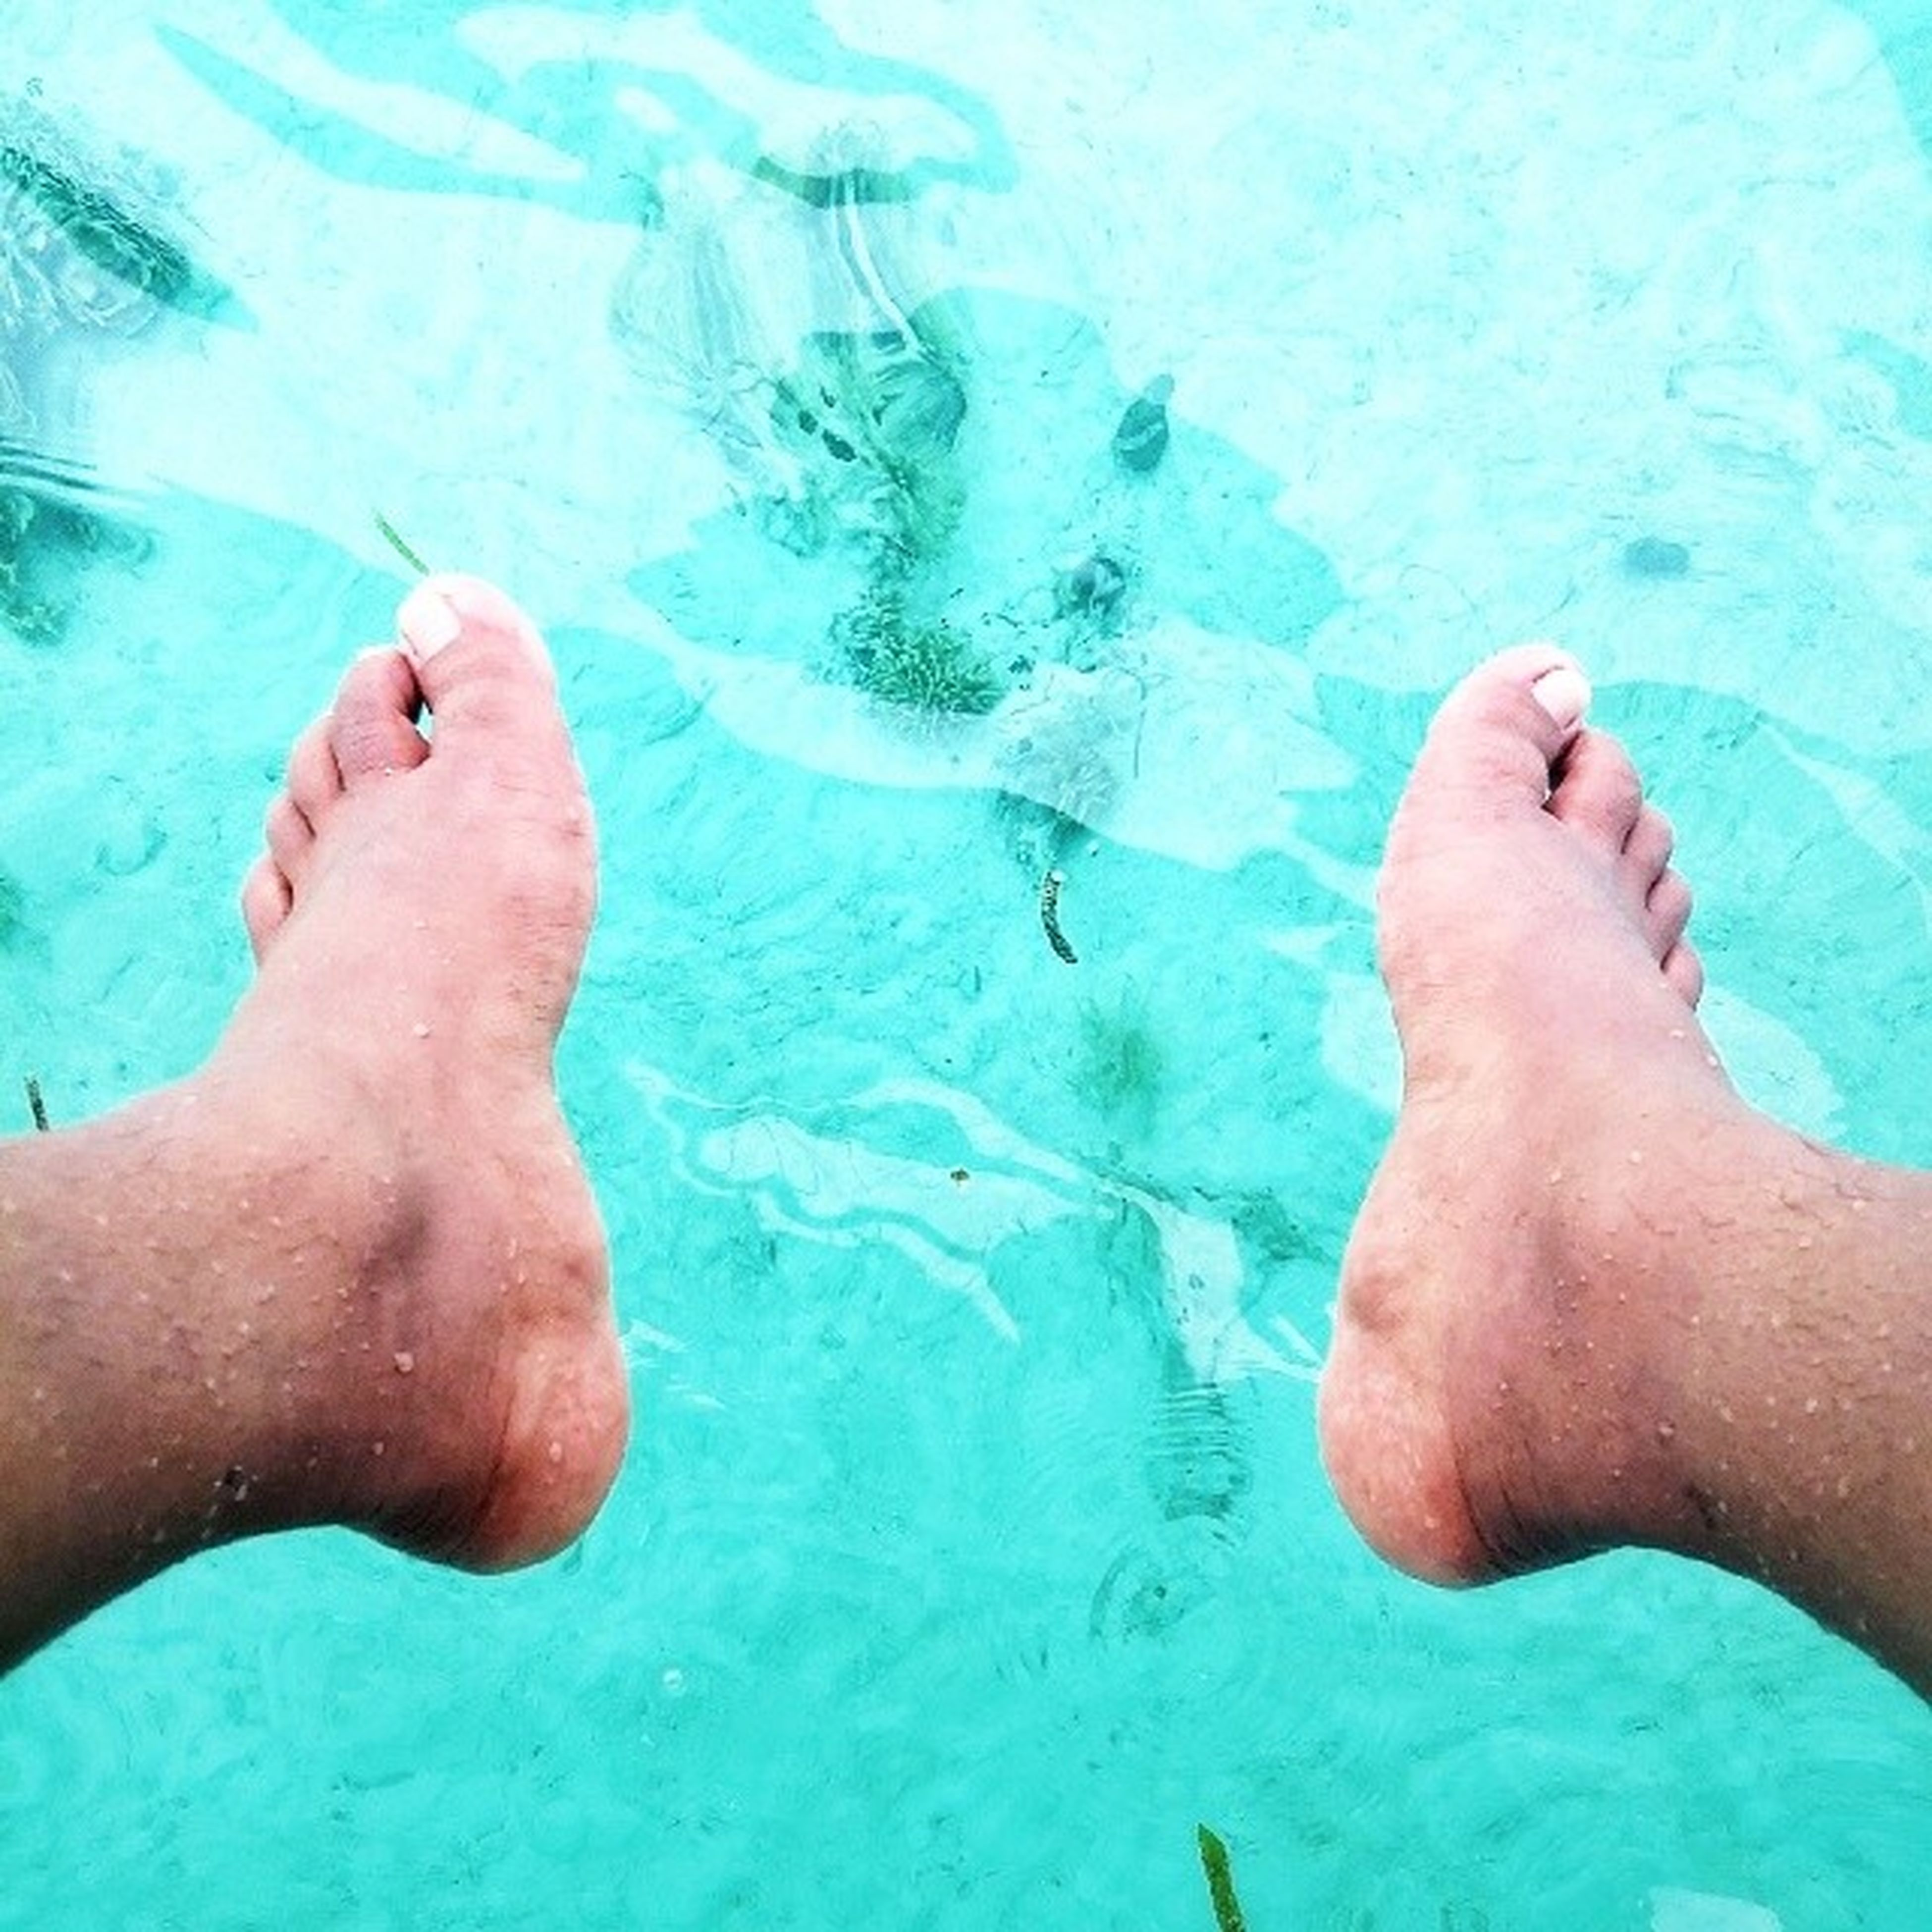 water, low section, person, barefoot, swimming pool, human foot, personal perspective, leisure activity, lifestyles, blue, high angle view, sea, part of, turquoise colored, unrecognizable person